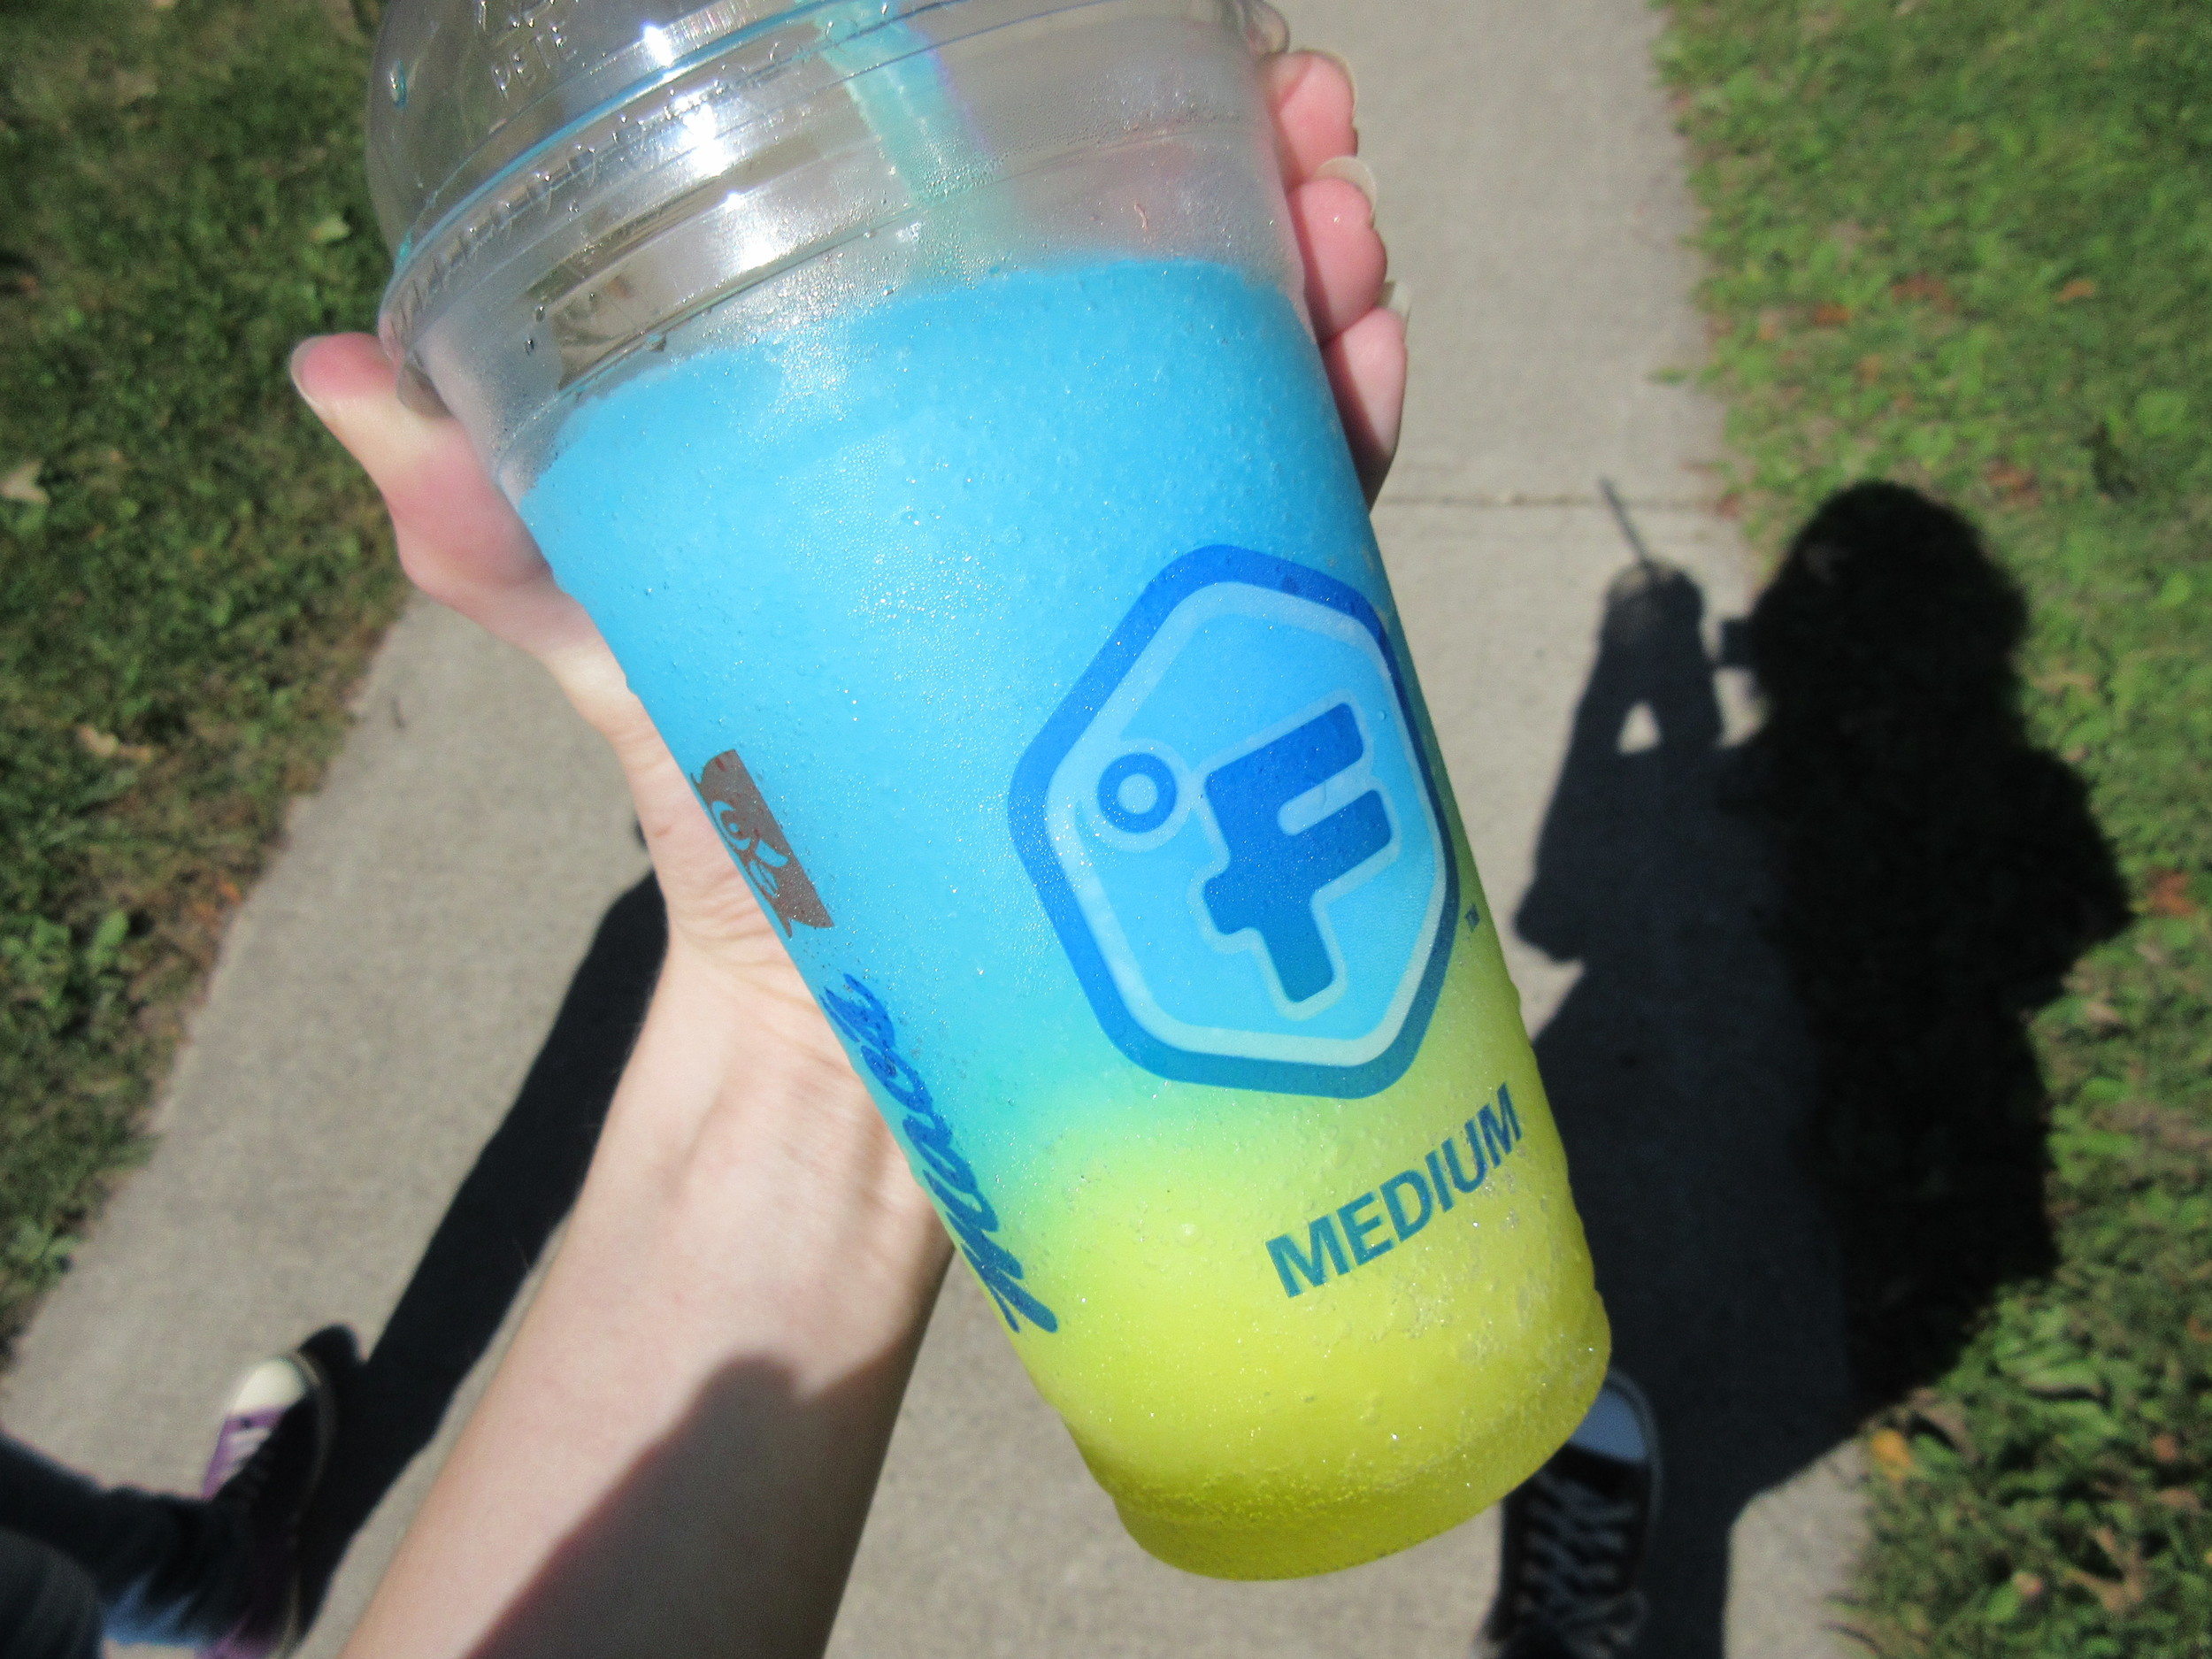 Slushies from the corner store.